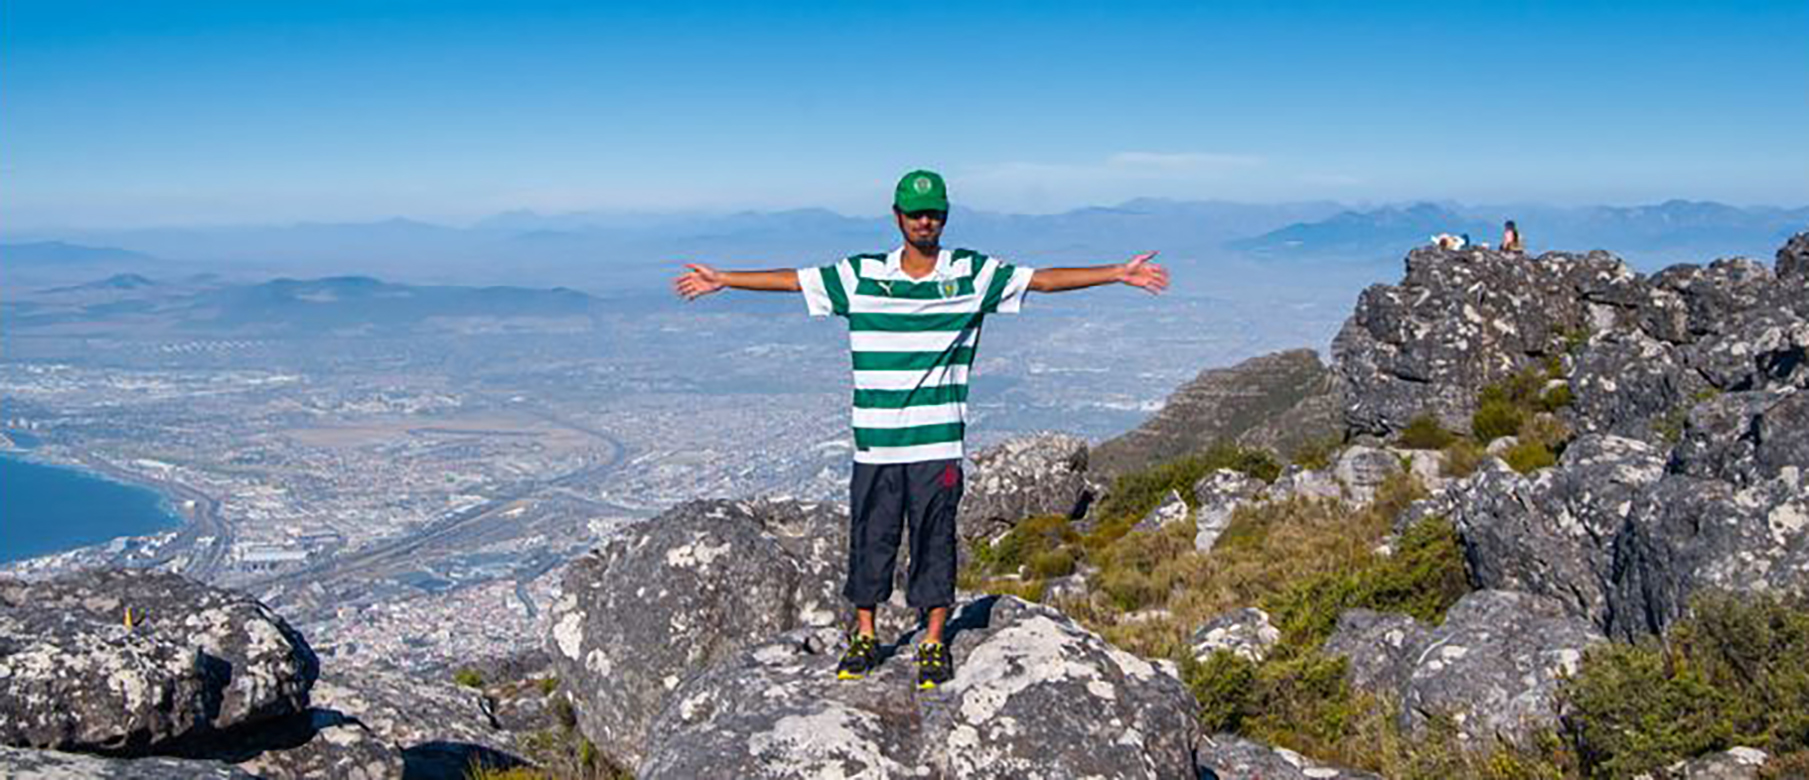 TableMountainMan1